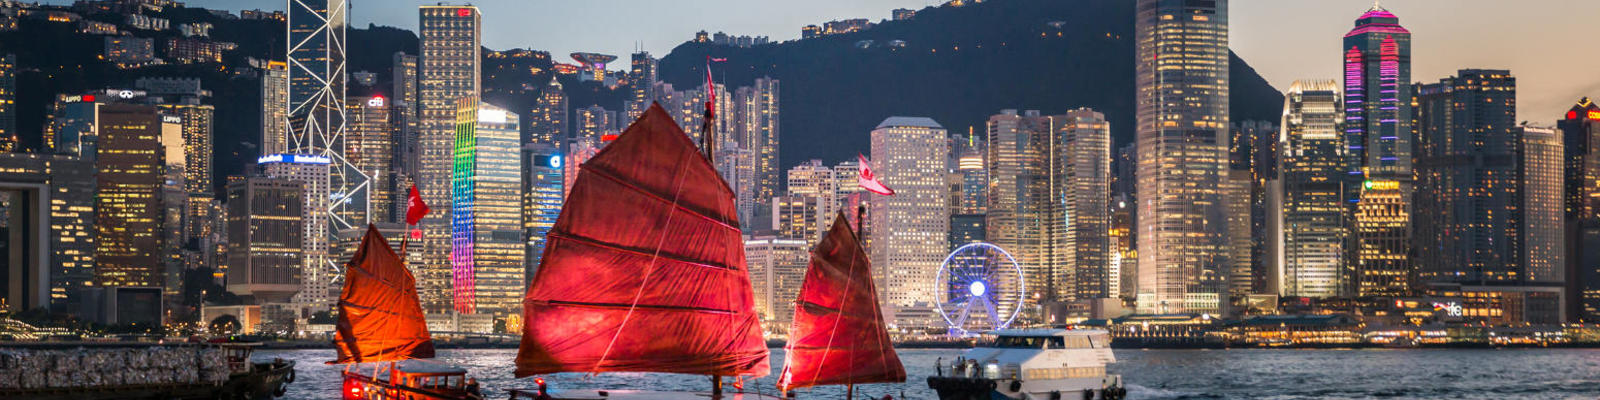 A junk boat sailing in front of the Hong Kong skyline at night